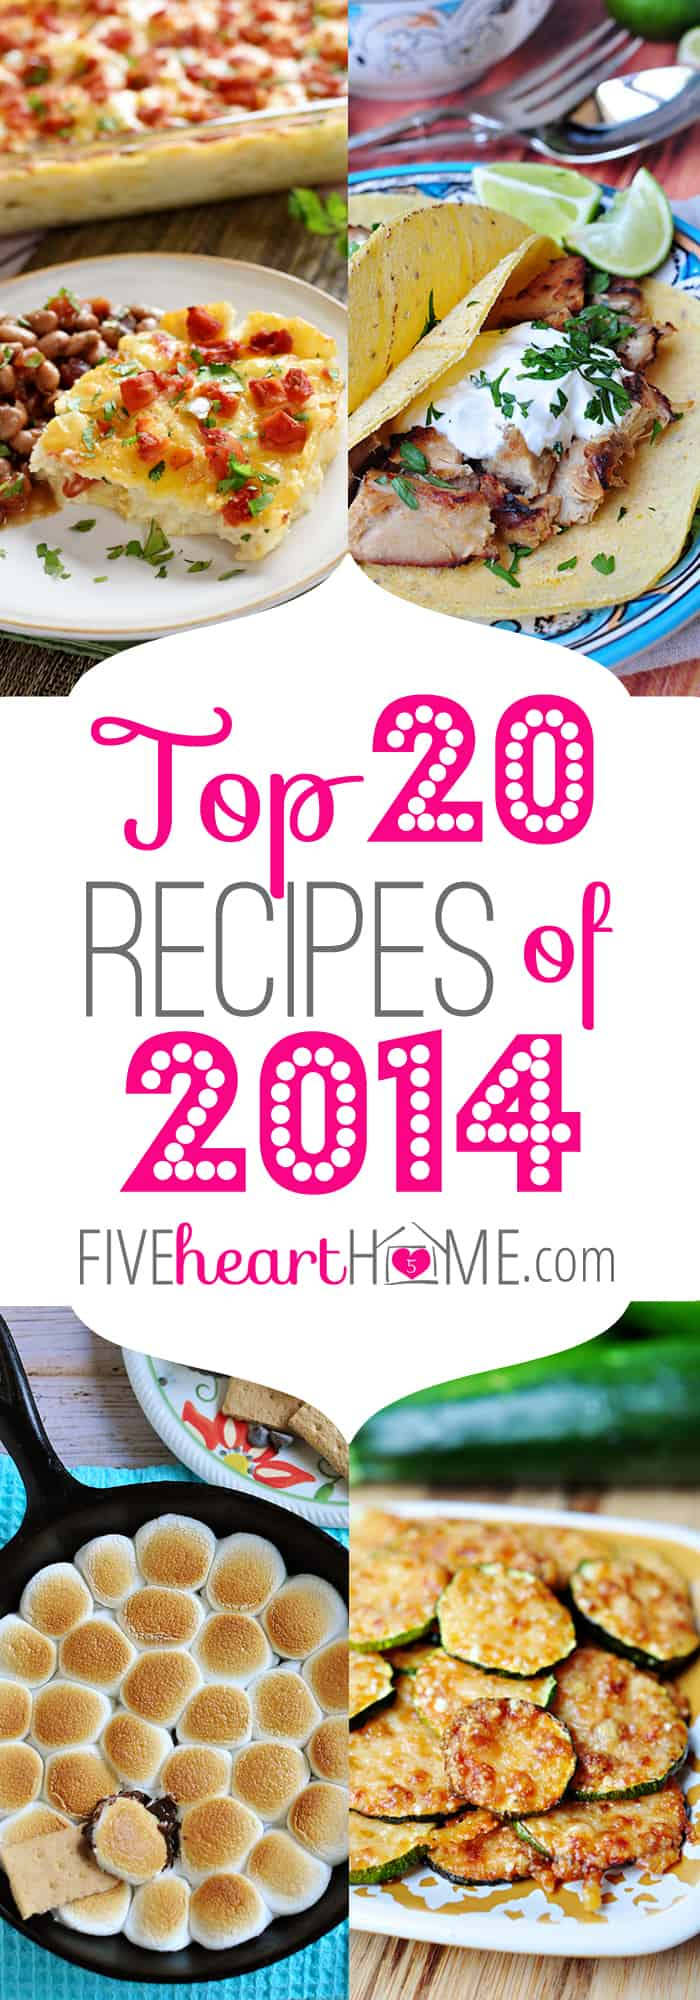 Five Heart Home's Top 20 Recipes of 2014 ~ a round-up of the year's most popular recipes | FiveHeartHome.com